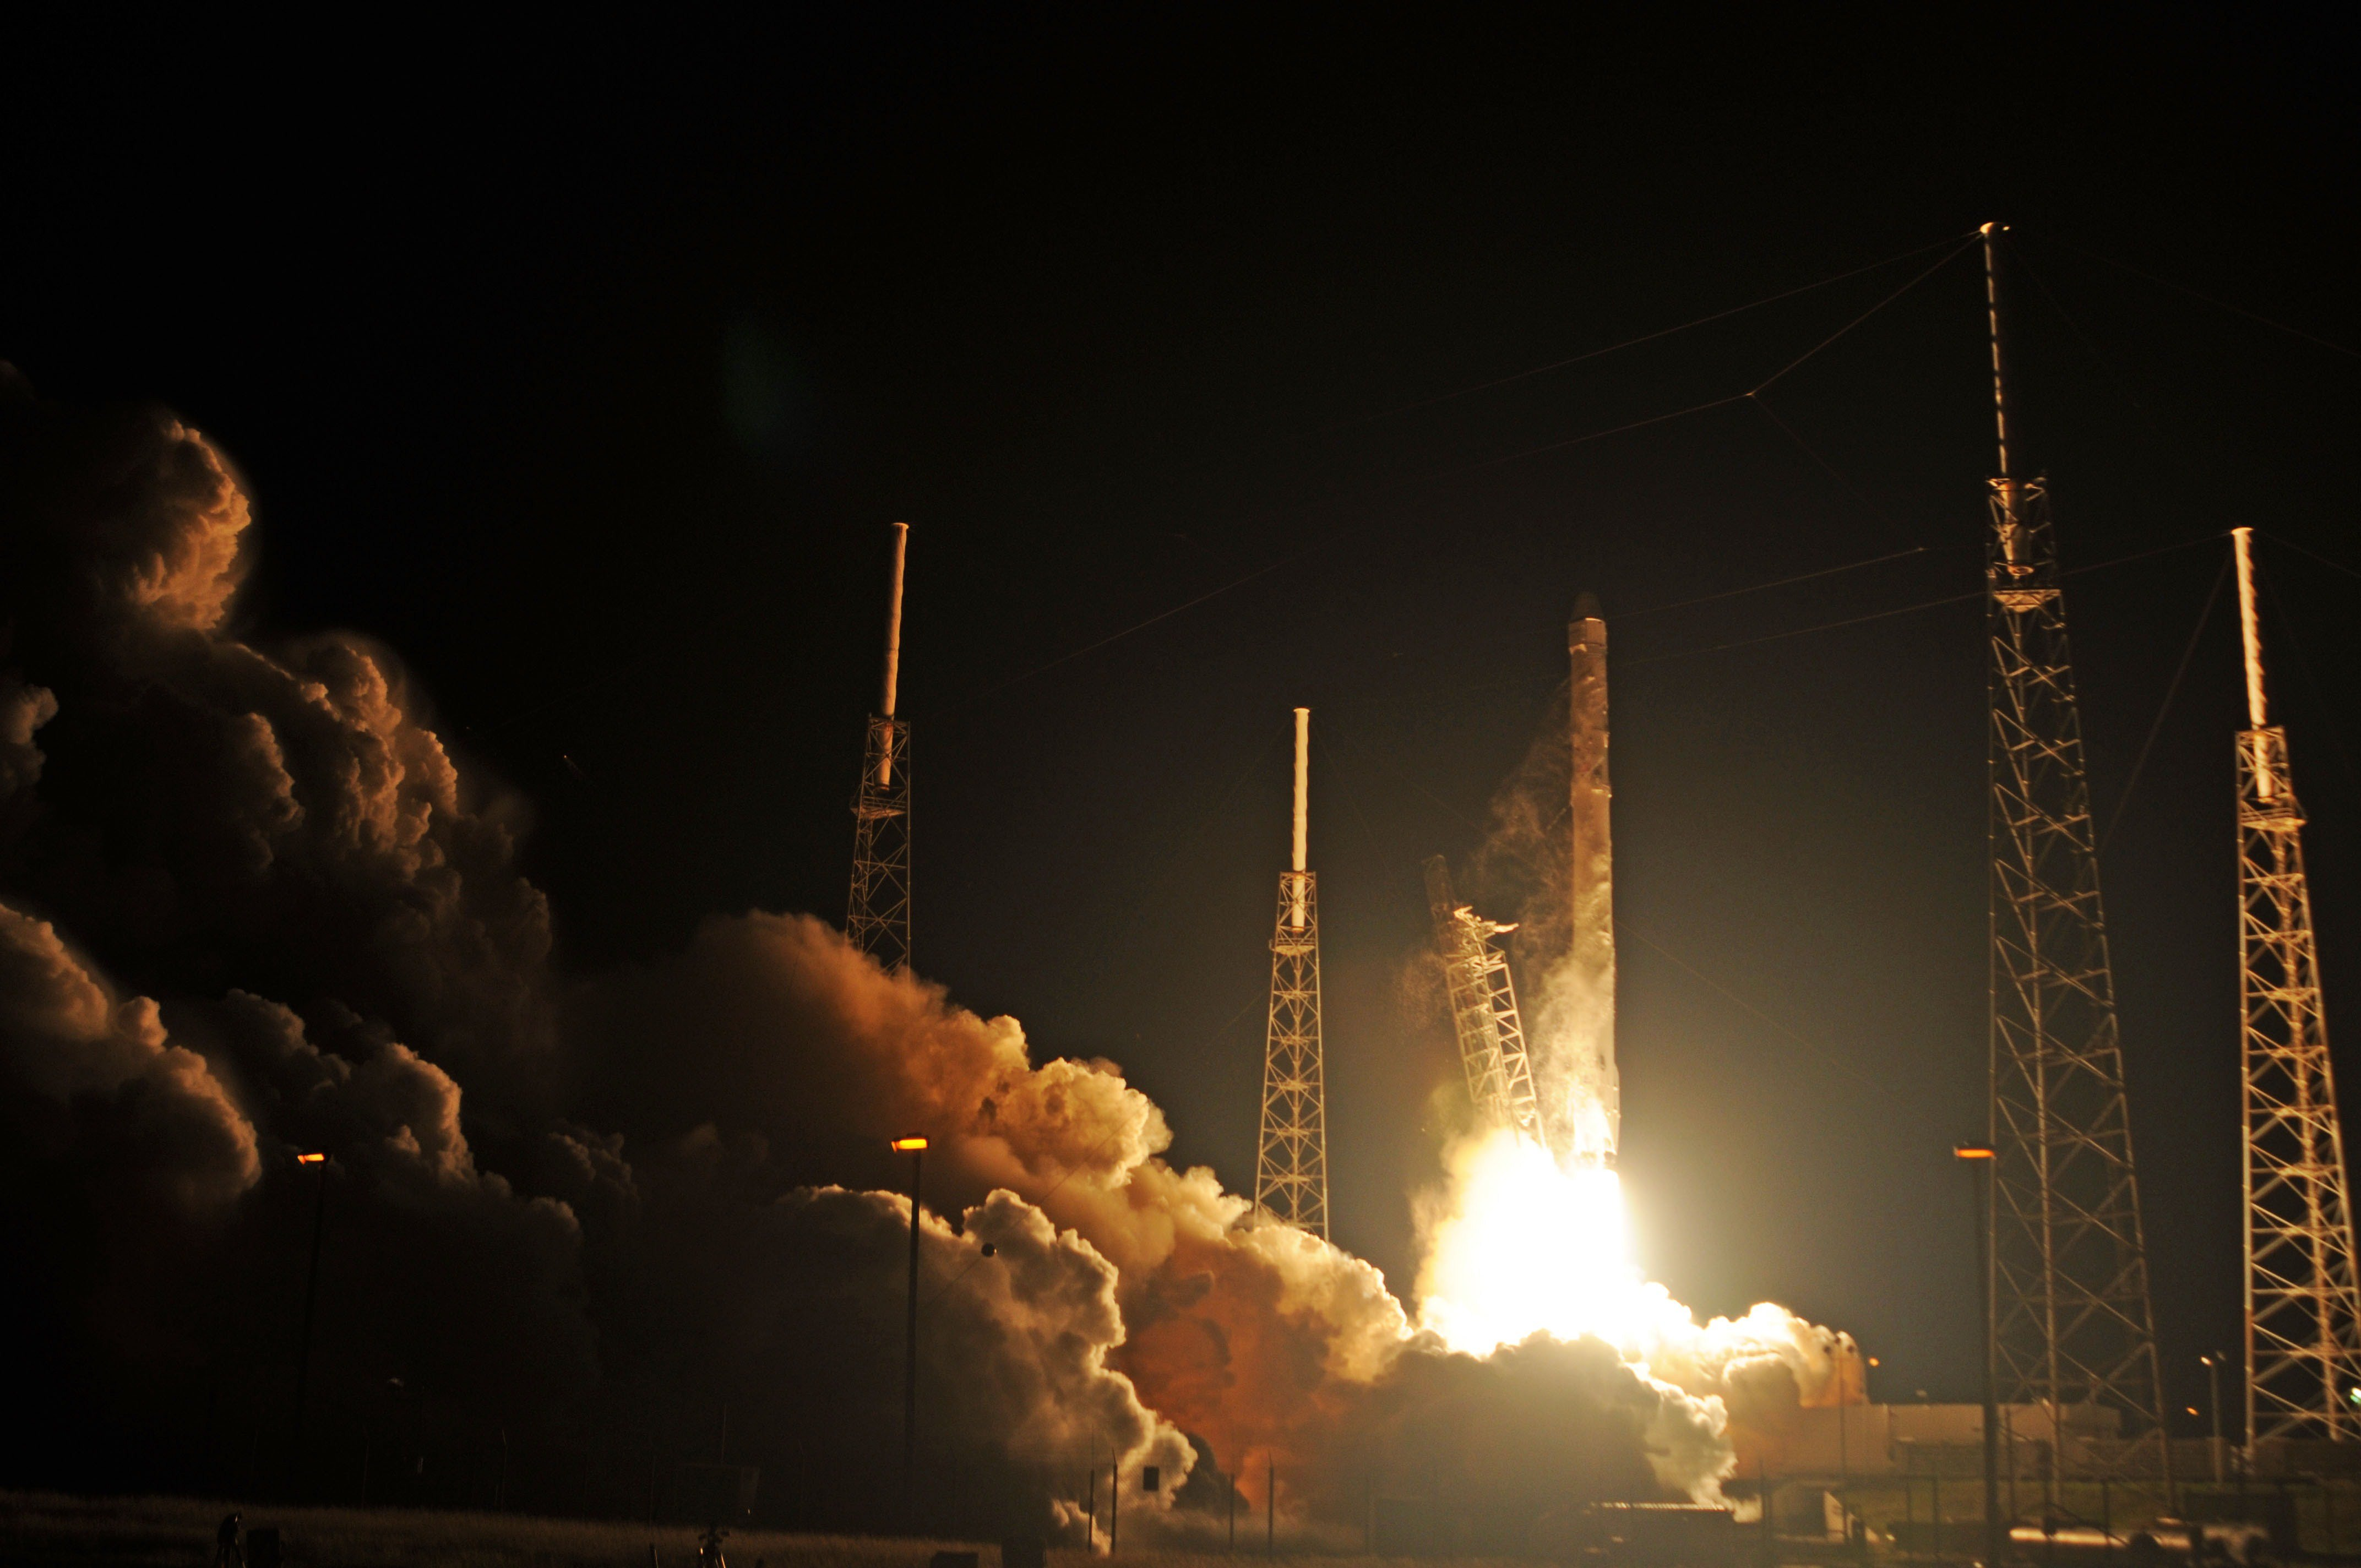 TOPSHOTS                     Space X's Falcon 9 rocket launches on Jan. 10, 2015 as it heads to space from pad 40 at Cape Canaveral, Florida.